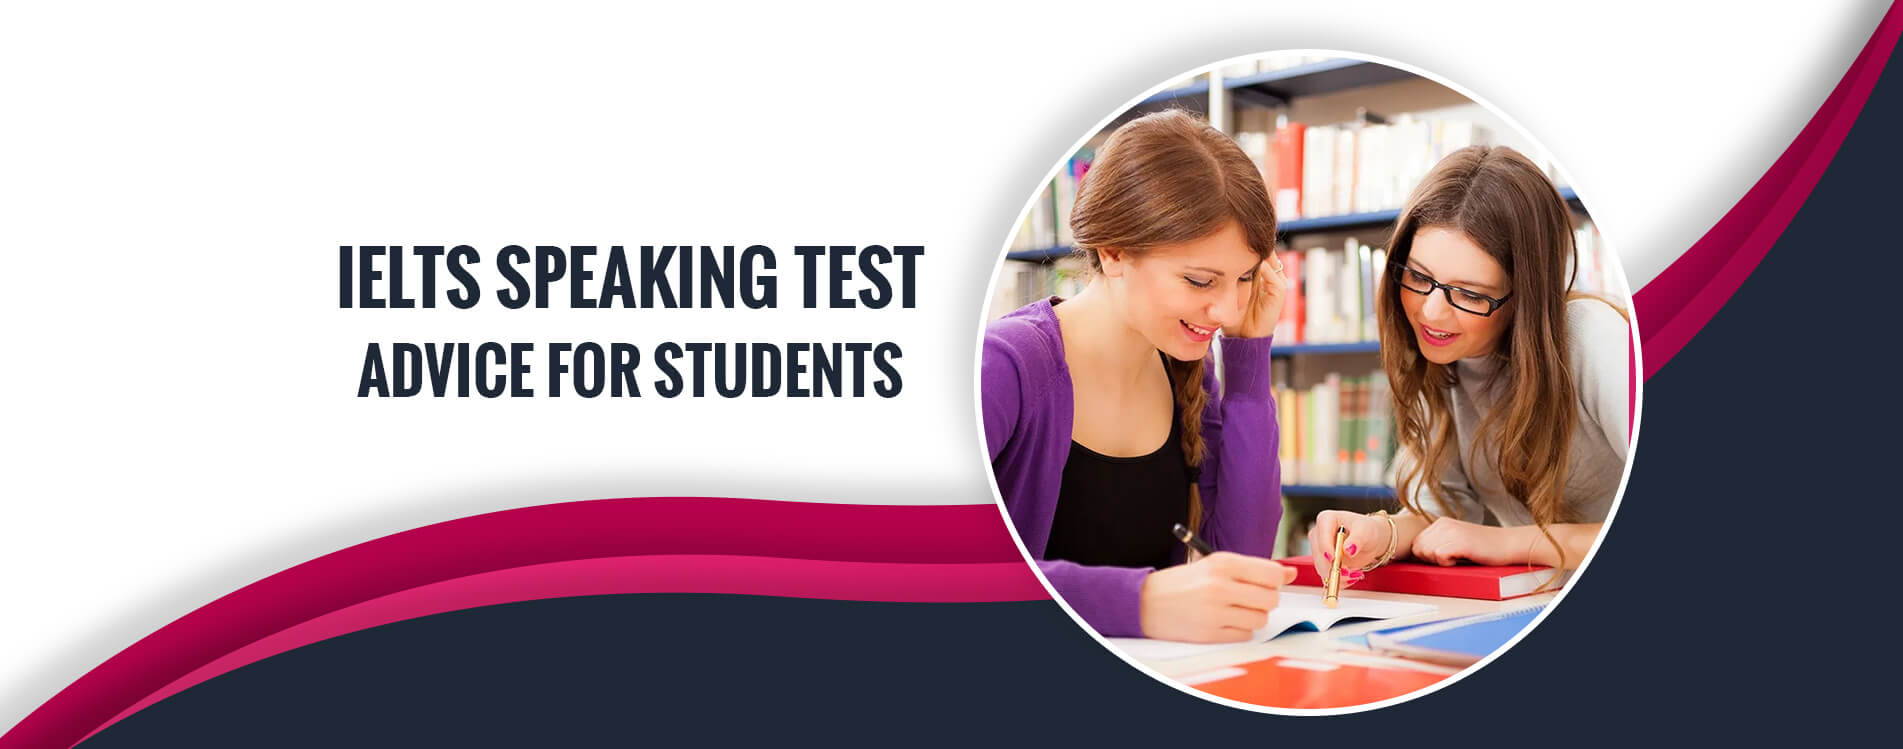 IELTS Speaking Test Advice for Students